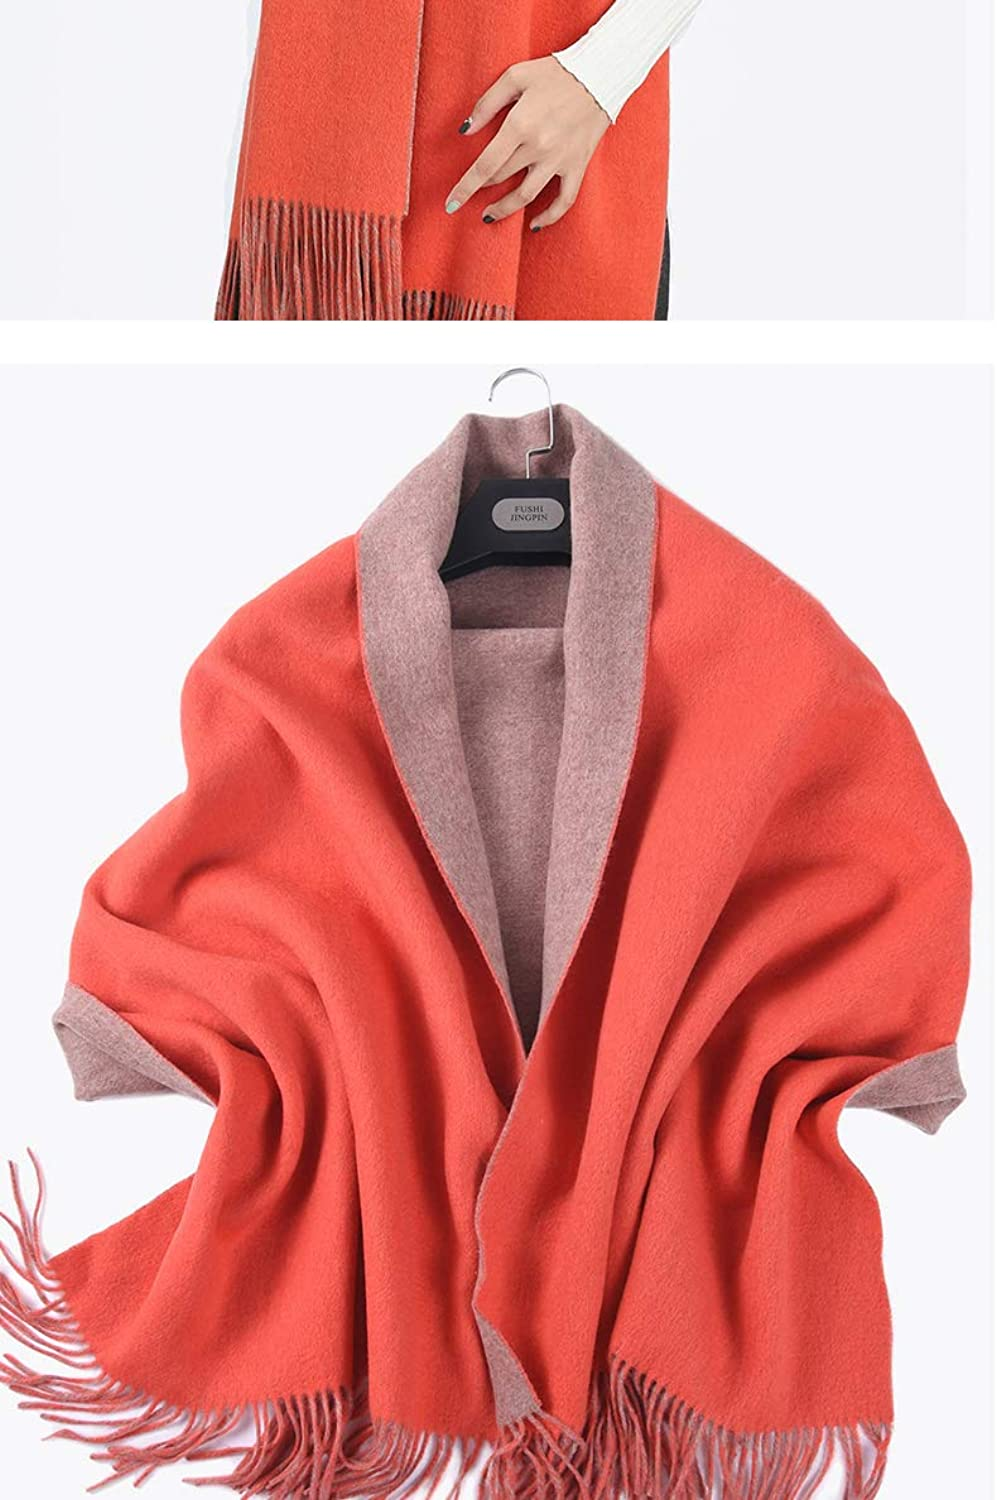 JINGB Home Increase Thicker Shawl Scarf Female Solid color Autumn and Winter Dualuse 400 Grams Long Warm DoubleSided (color   orange)